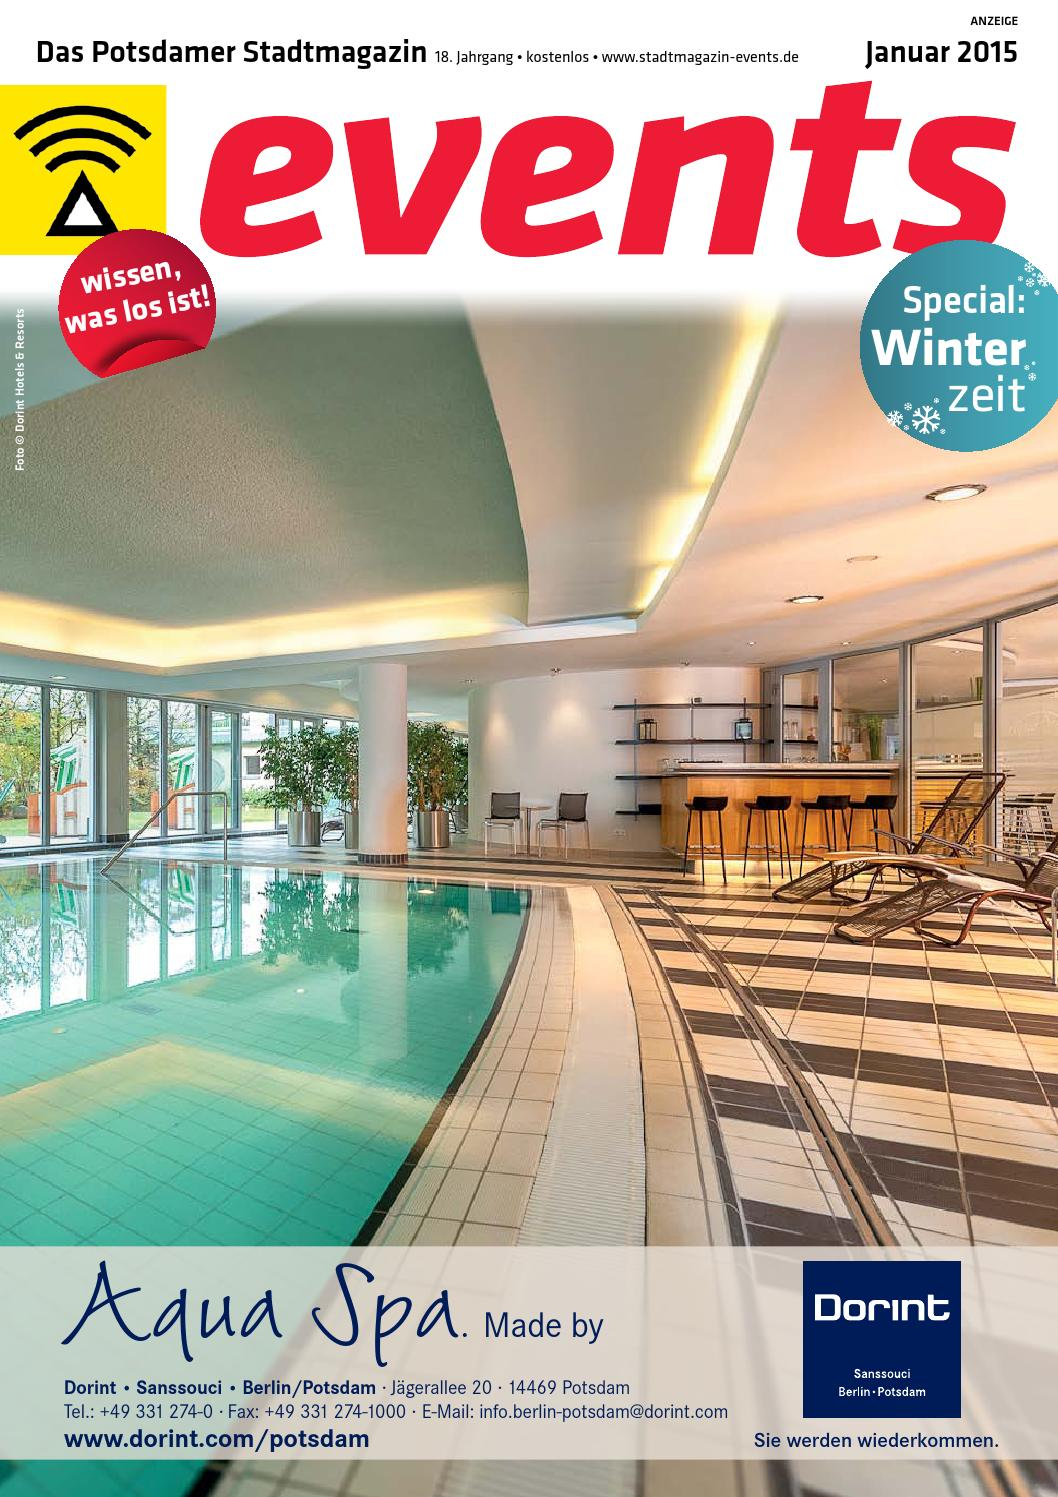 Omas Küche Schöningen Hotel 2015.01 By Seipt.media - Issuu